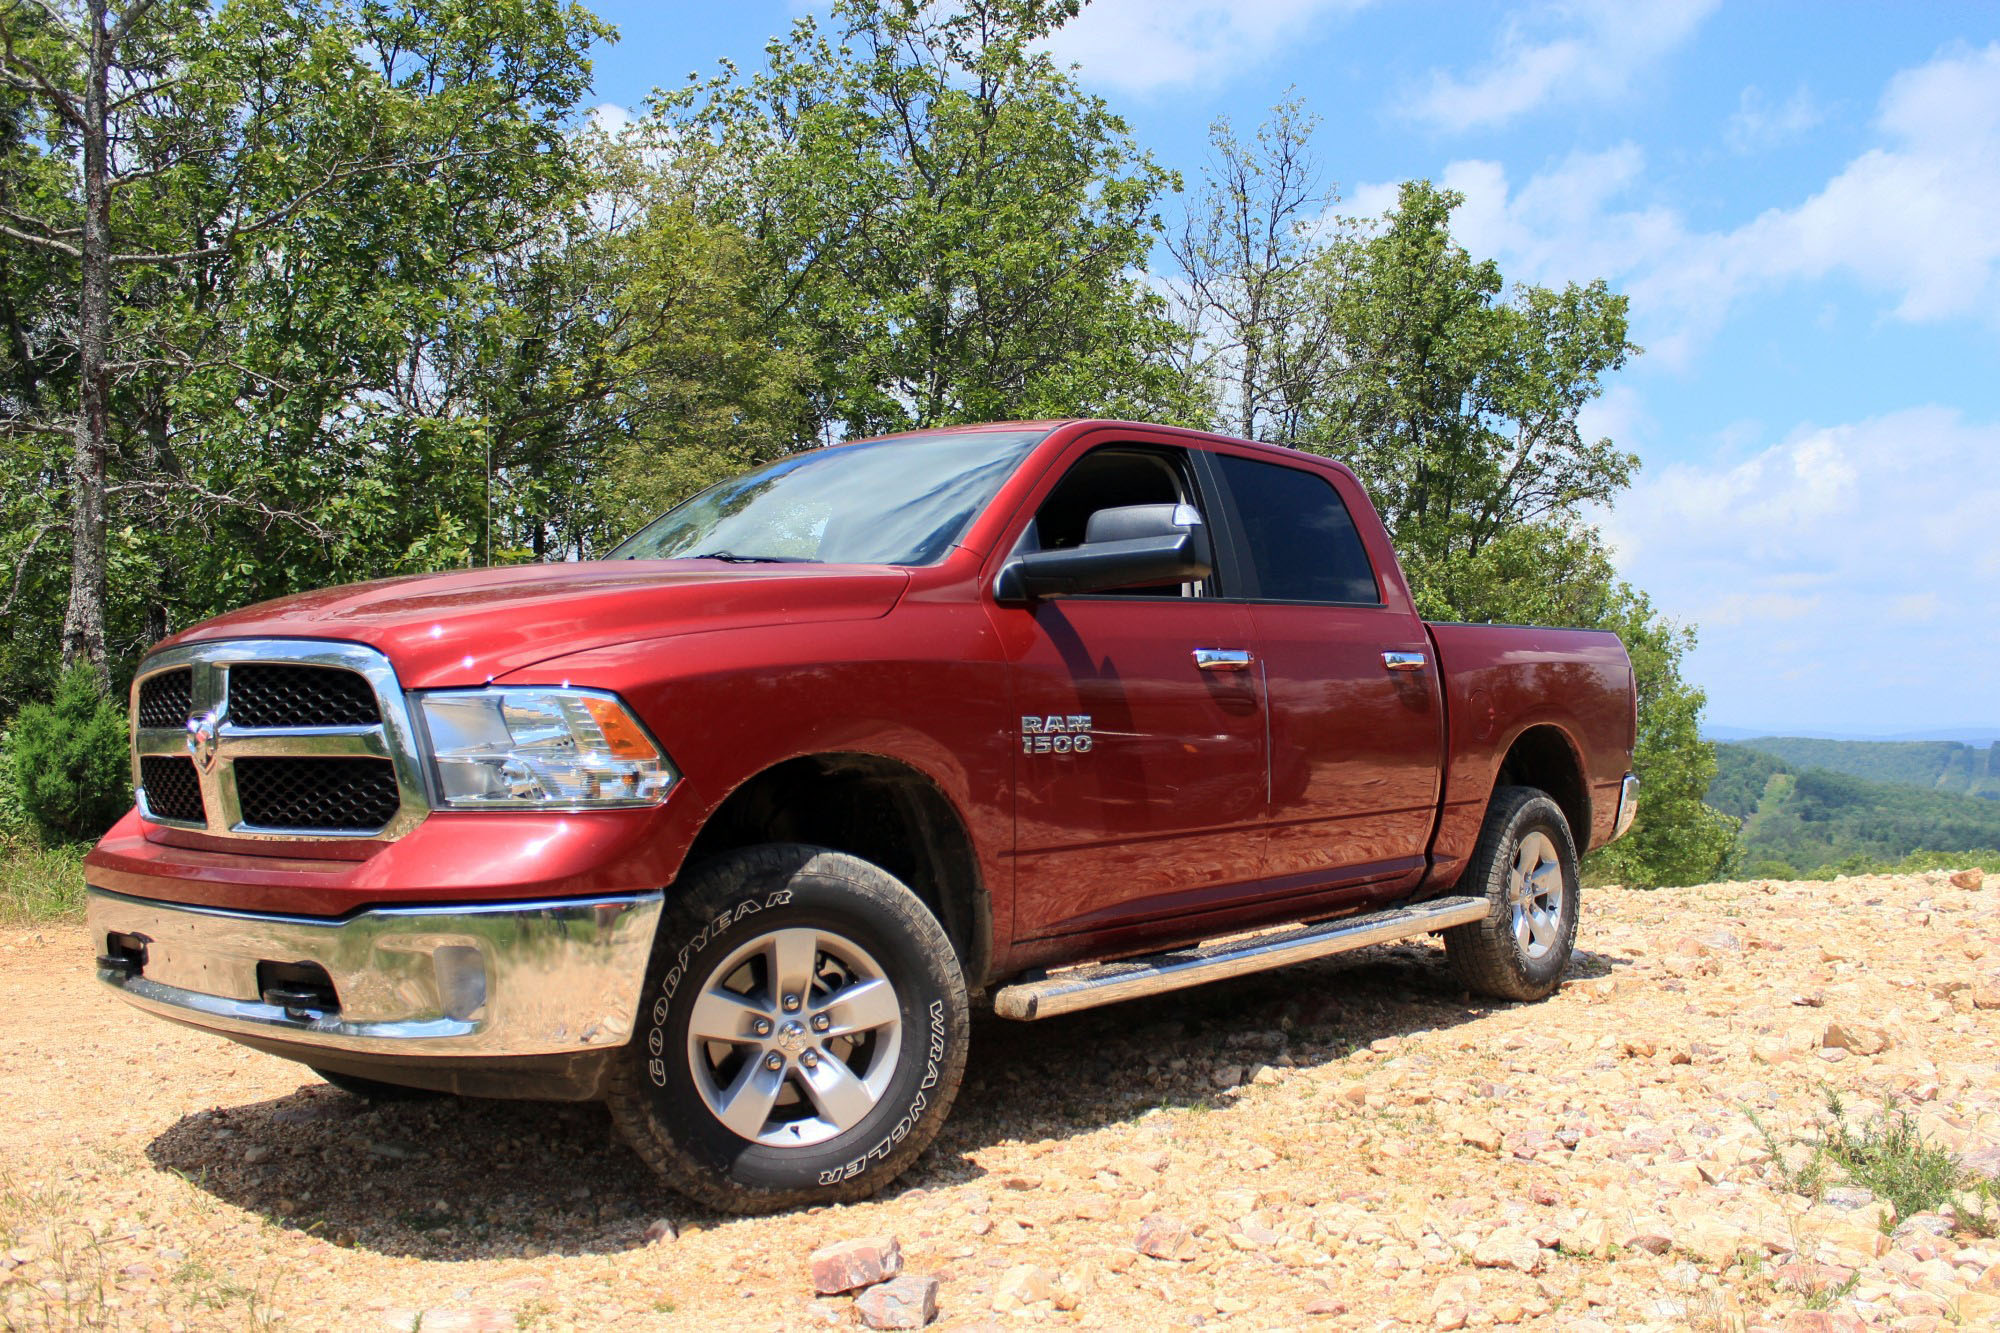 30 Days Of The 2017 Ram 1500 Gas Mileage Little Rock